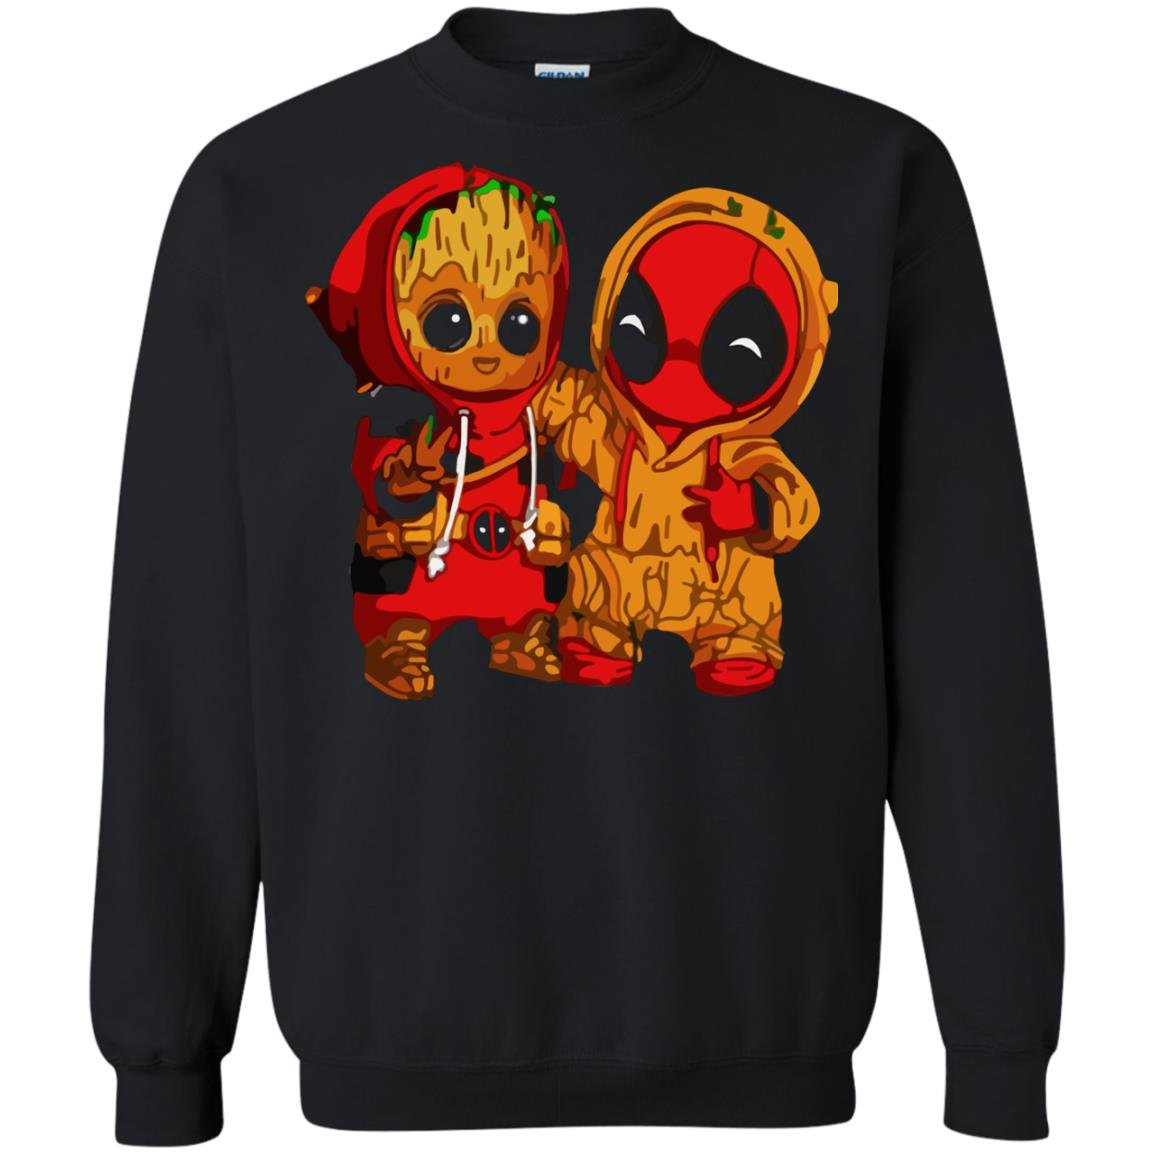 image 437 - Baby Groot And Deadpool Sweatshirt, Hoodie